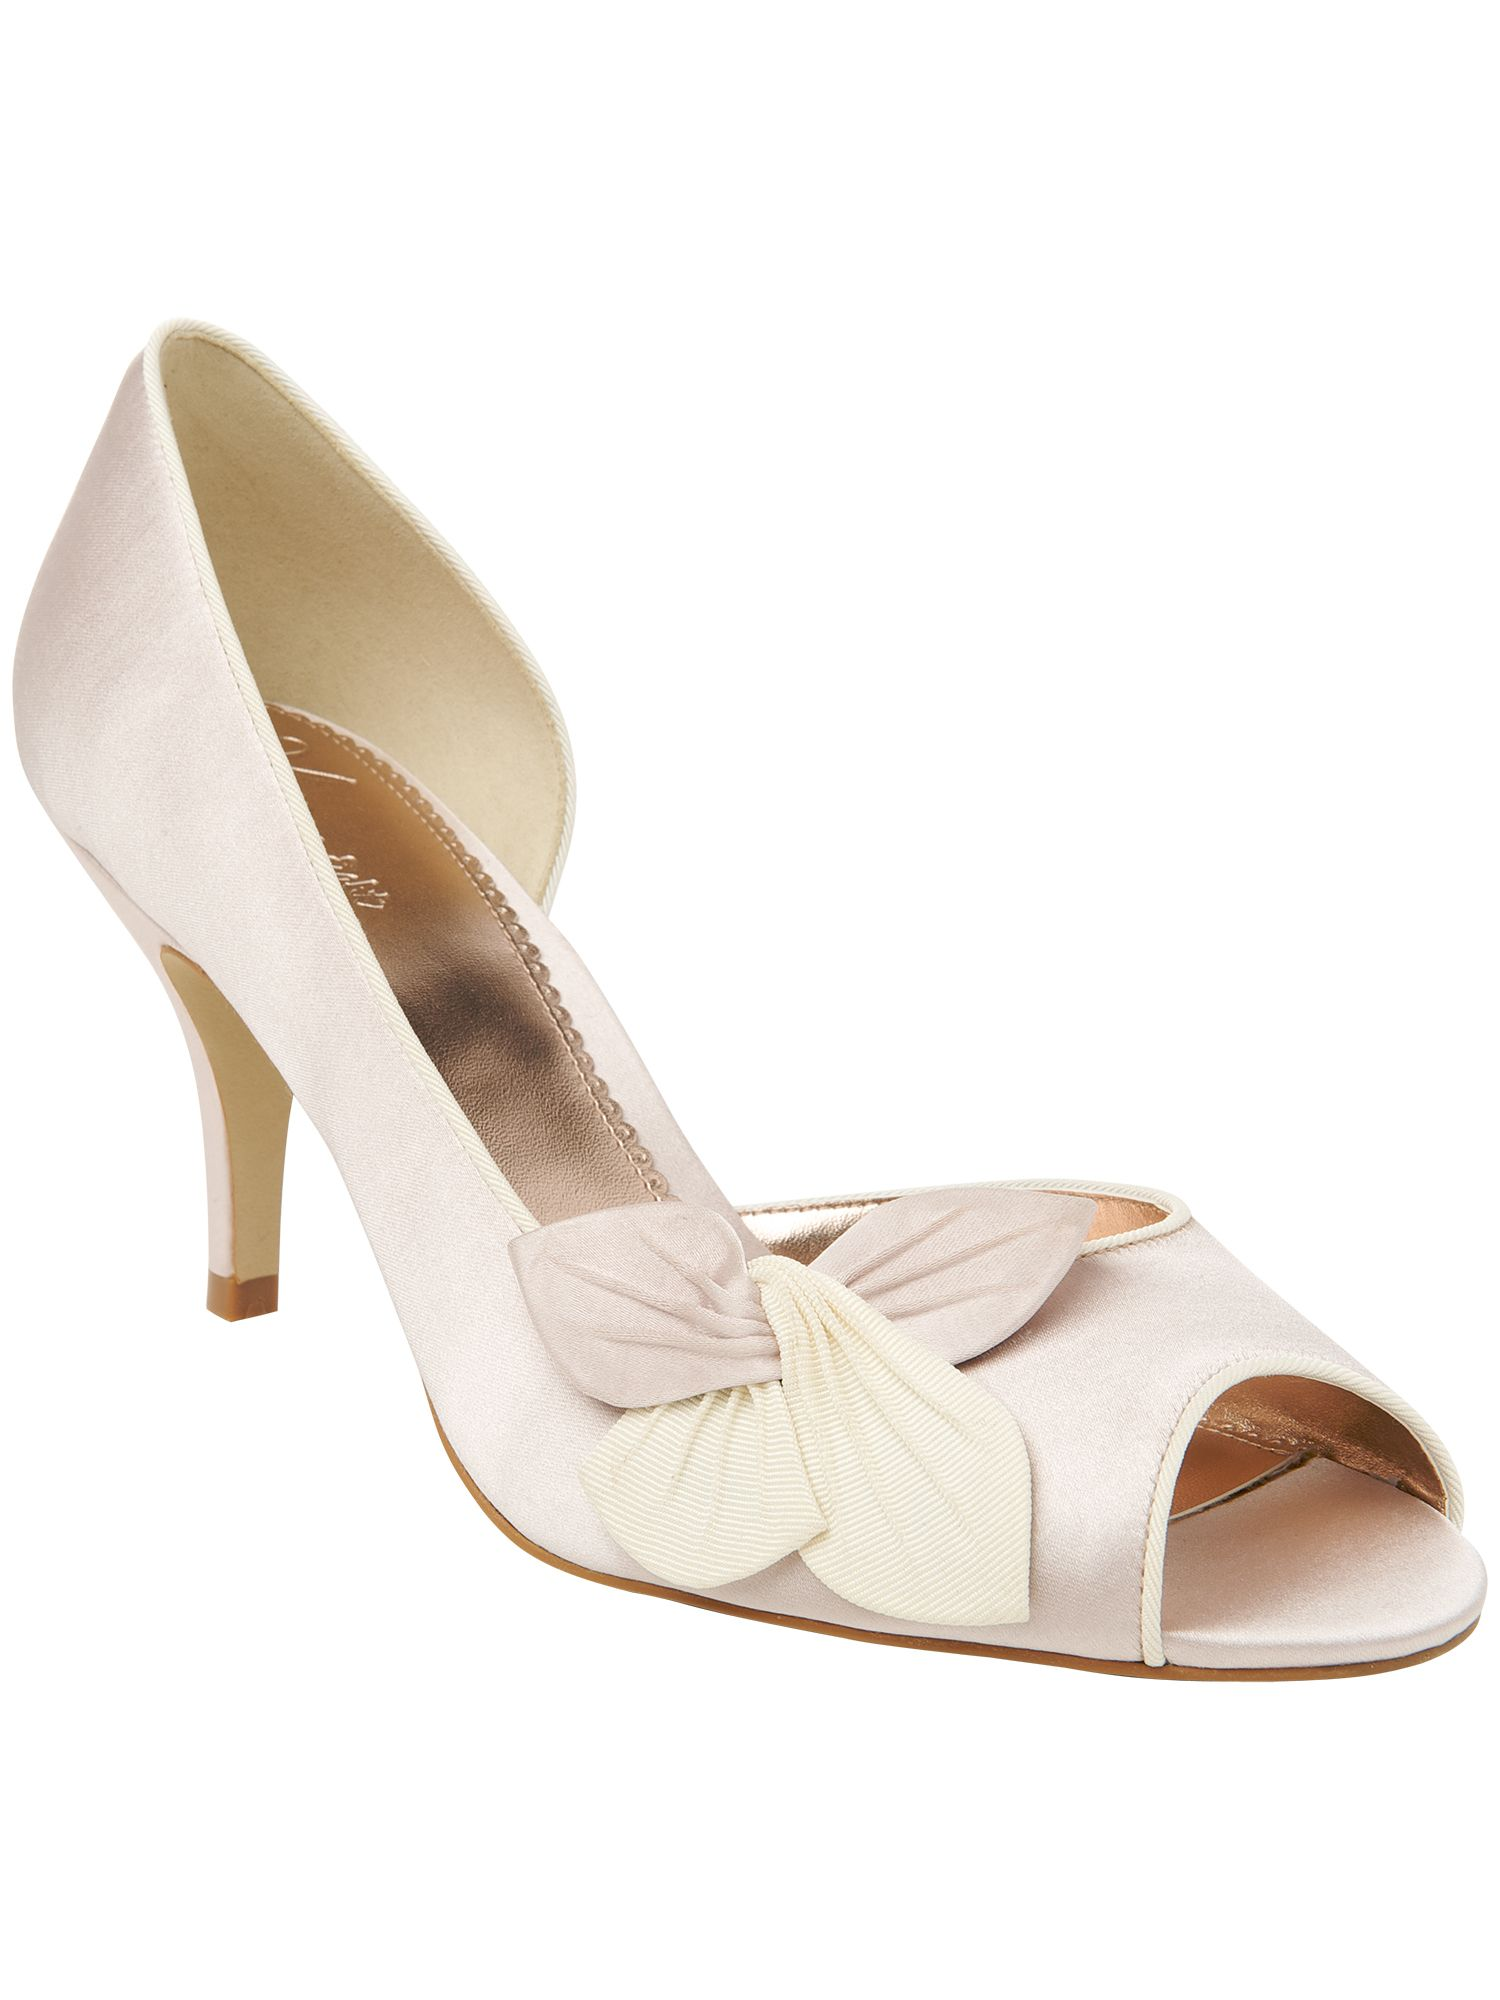 Anabel peep toe shoes